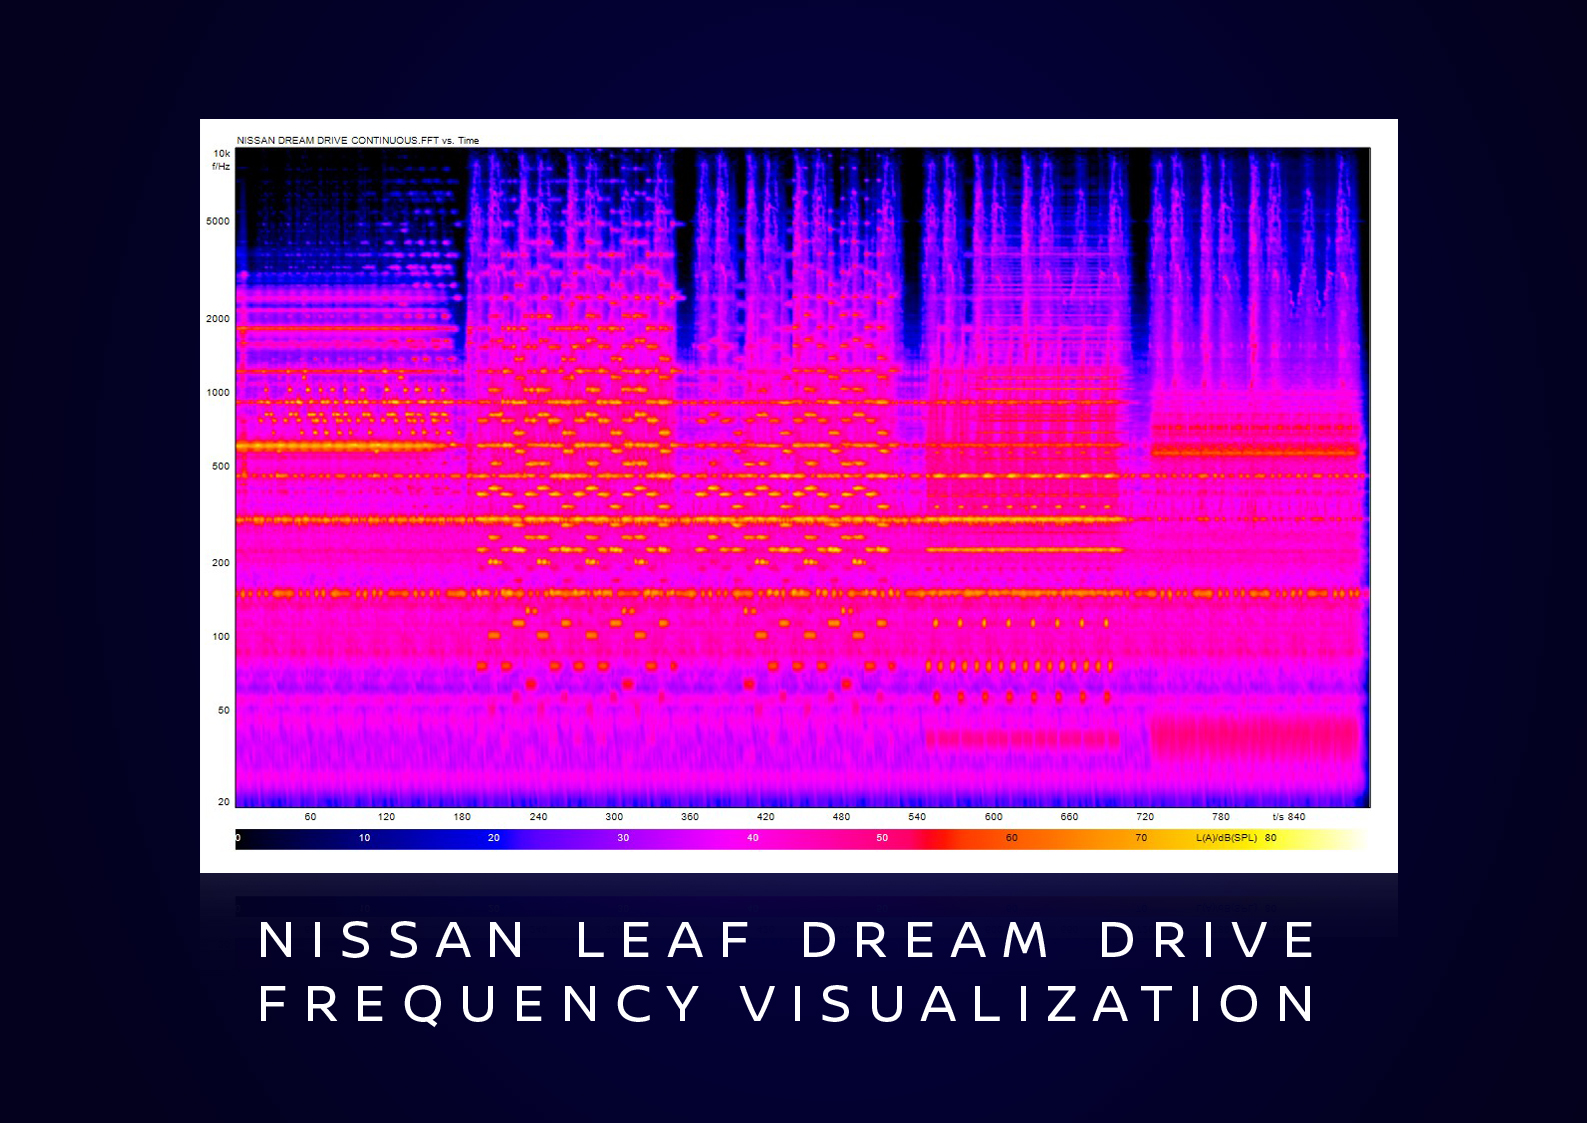 Nissan lullaby technology